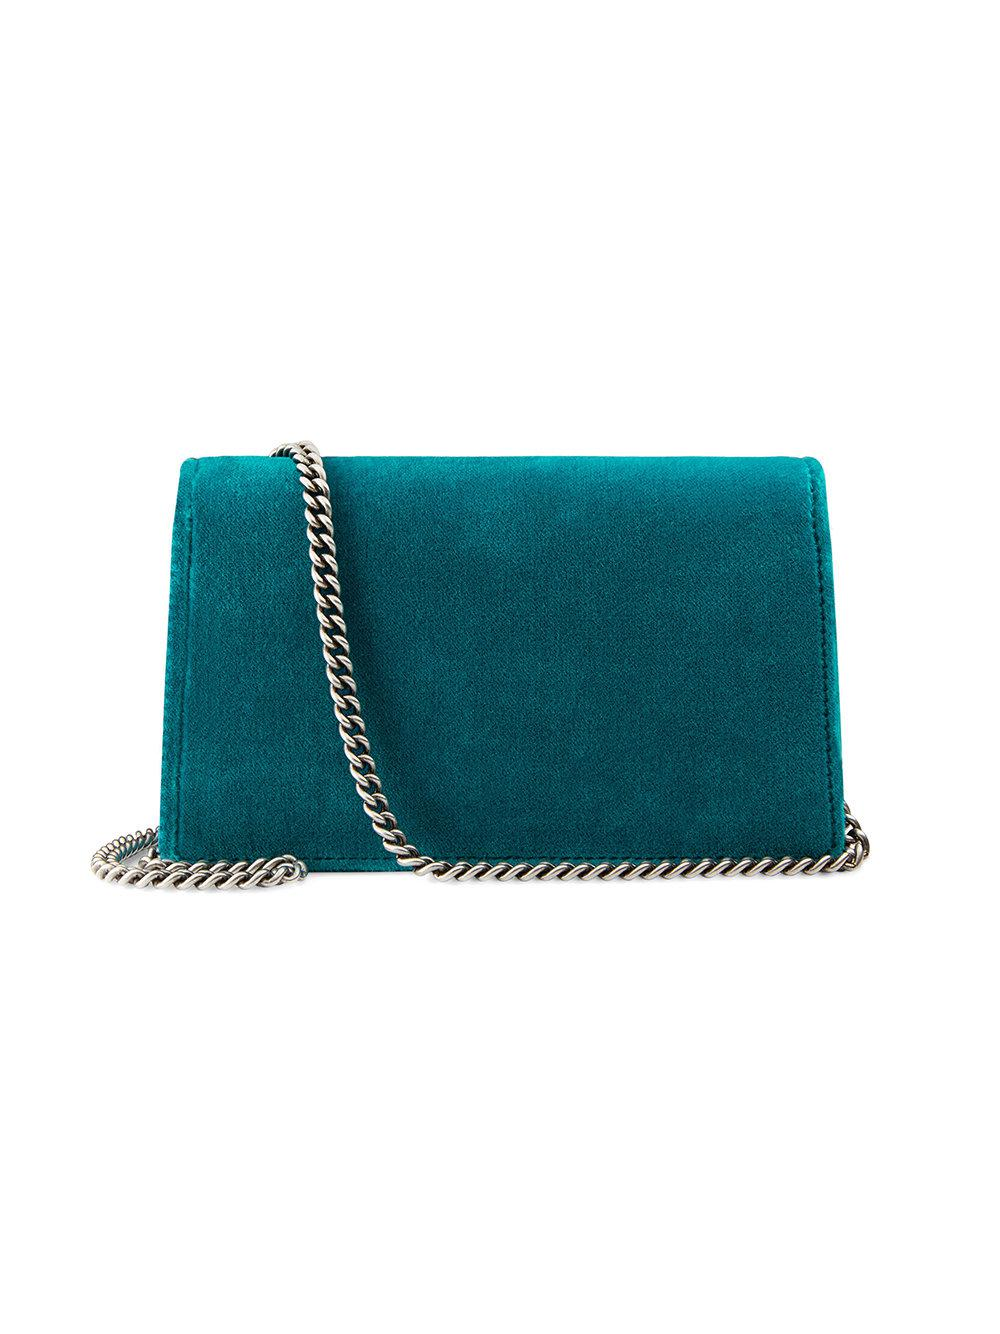 35bf347dde0c Gucci Dionysus Velvet Super Mini Bag in Blue - Lyst